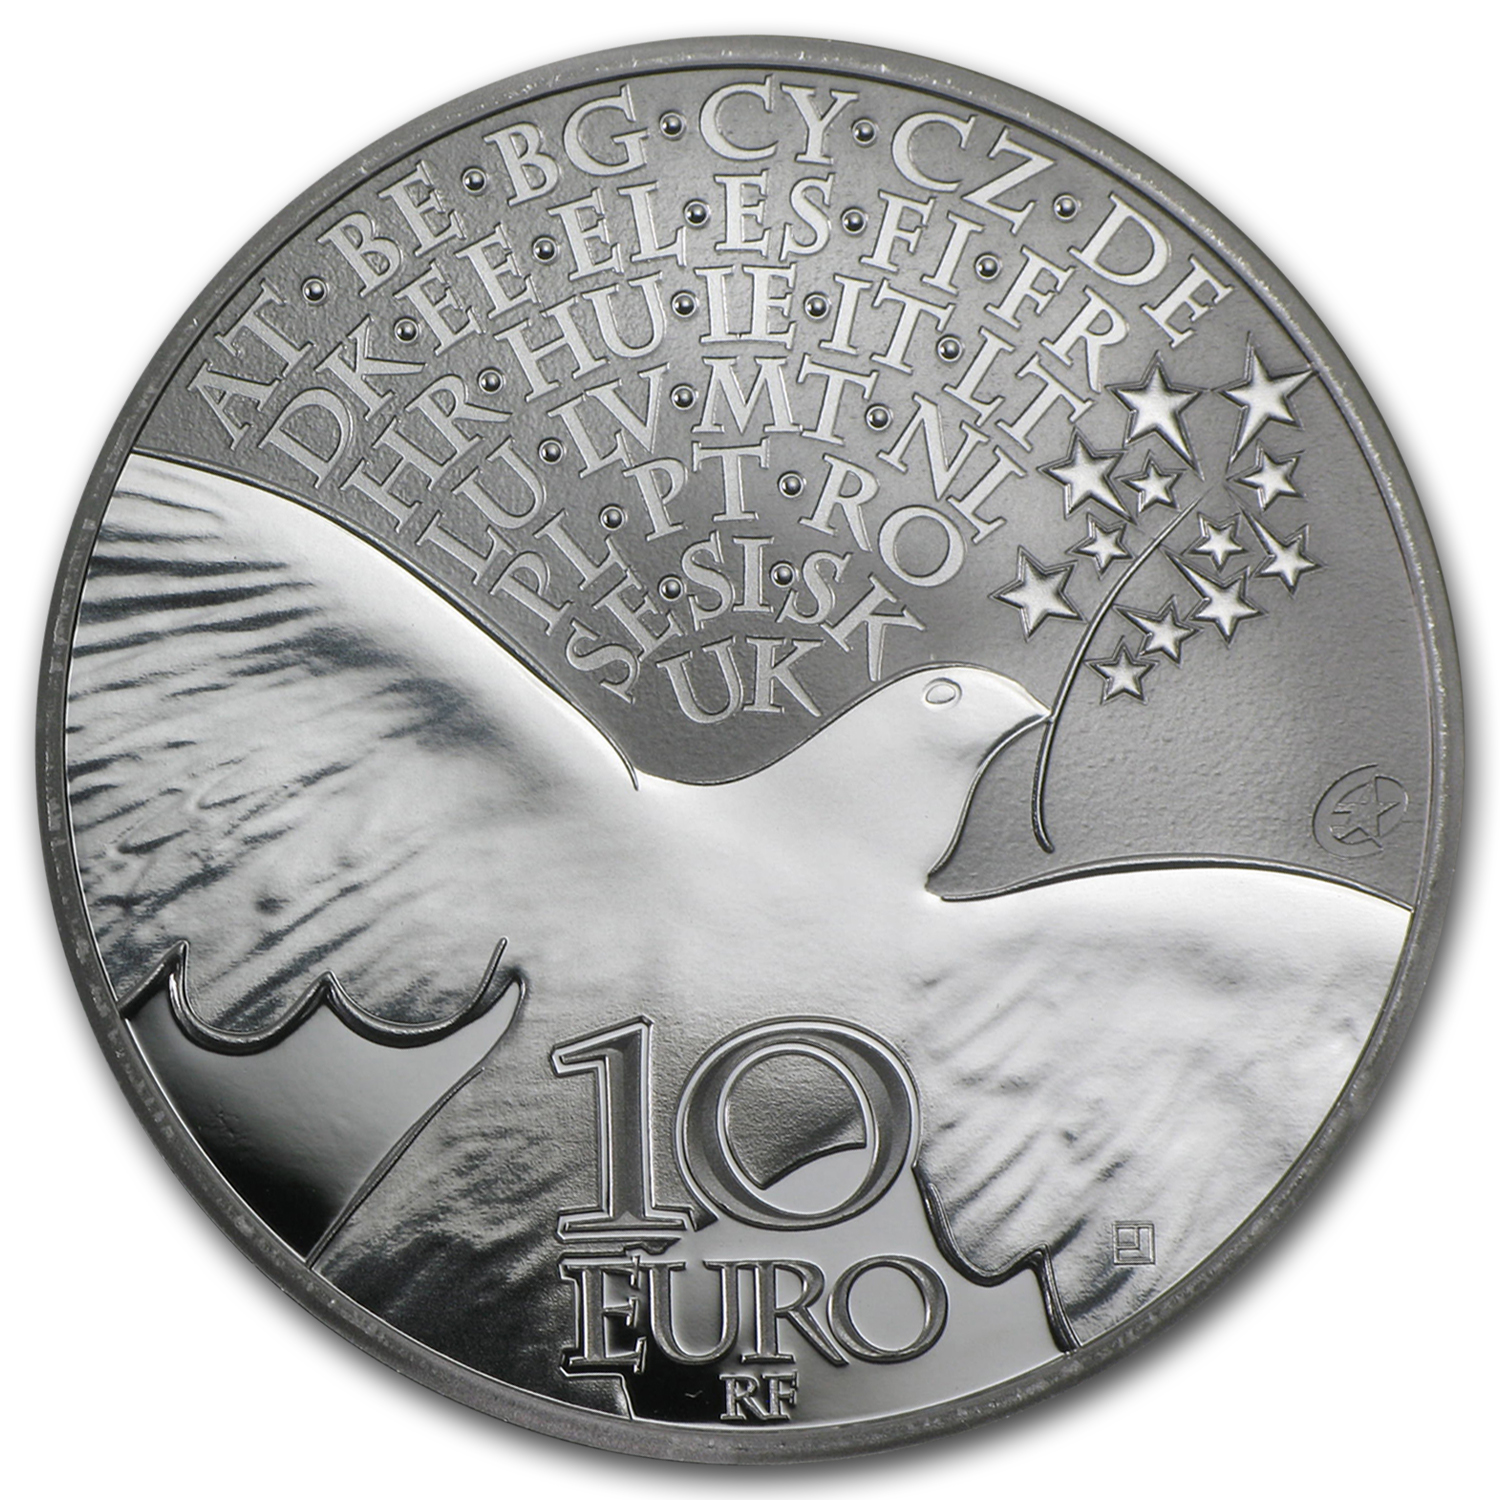 2015 Silver €10 Europa Series Prf (70 years of Peace in Europe)